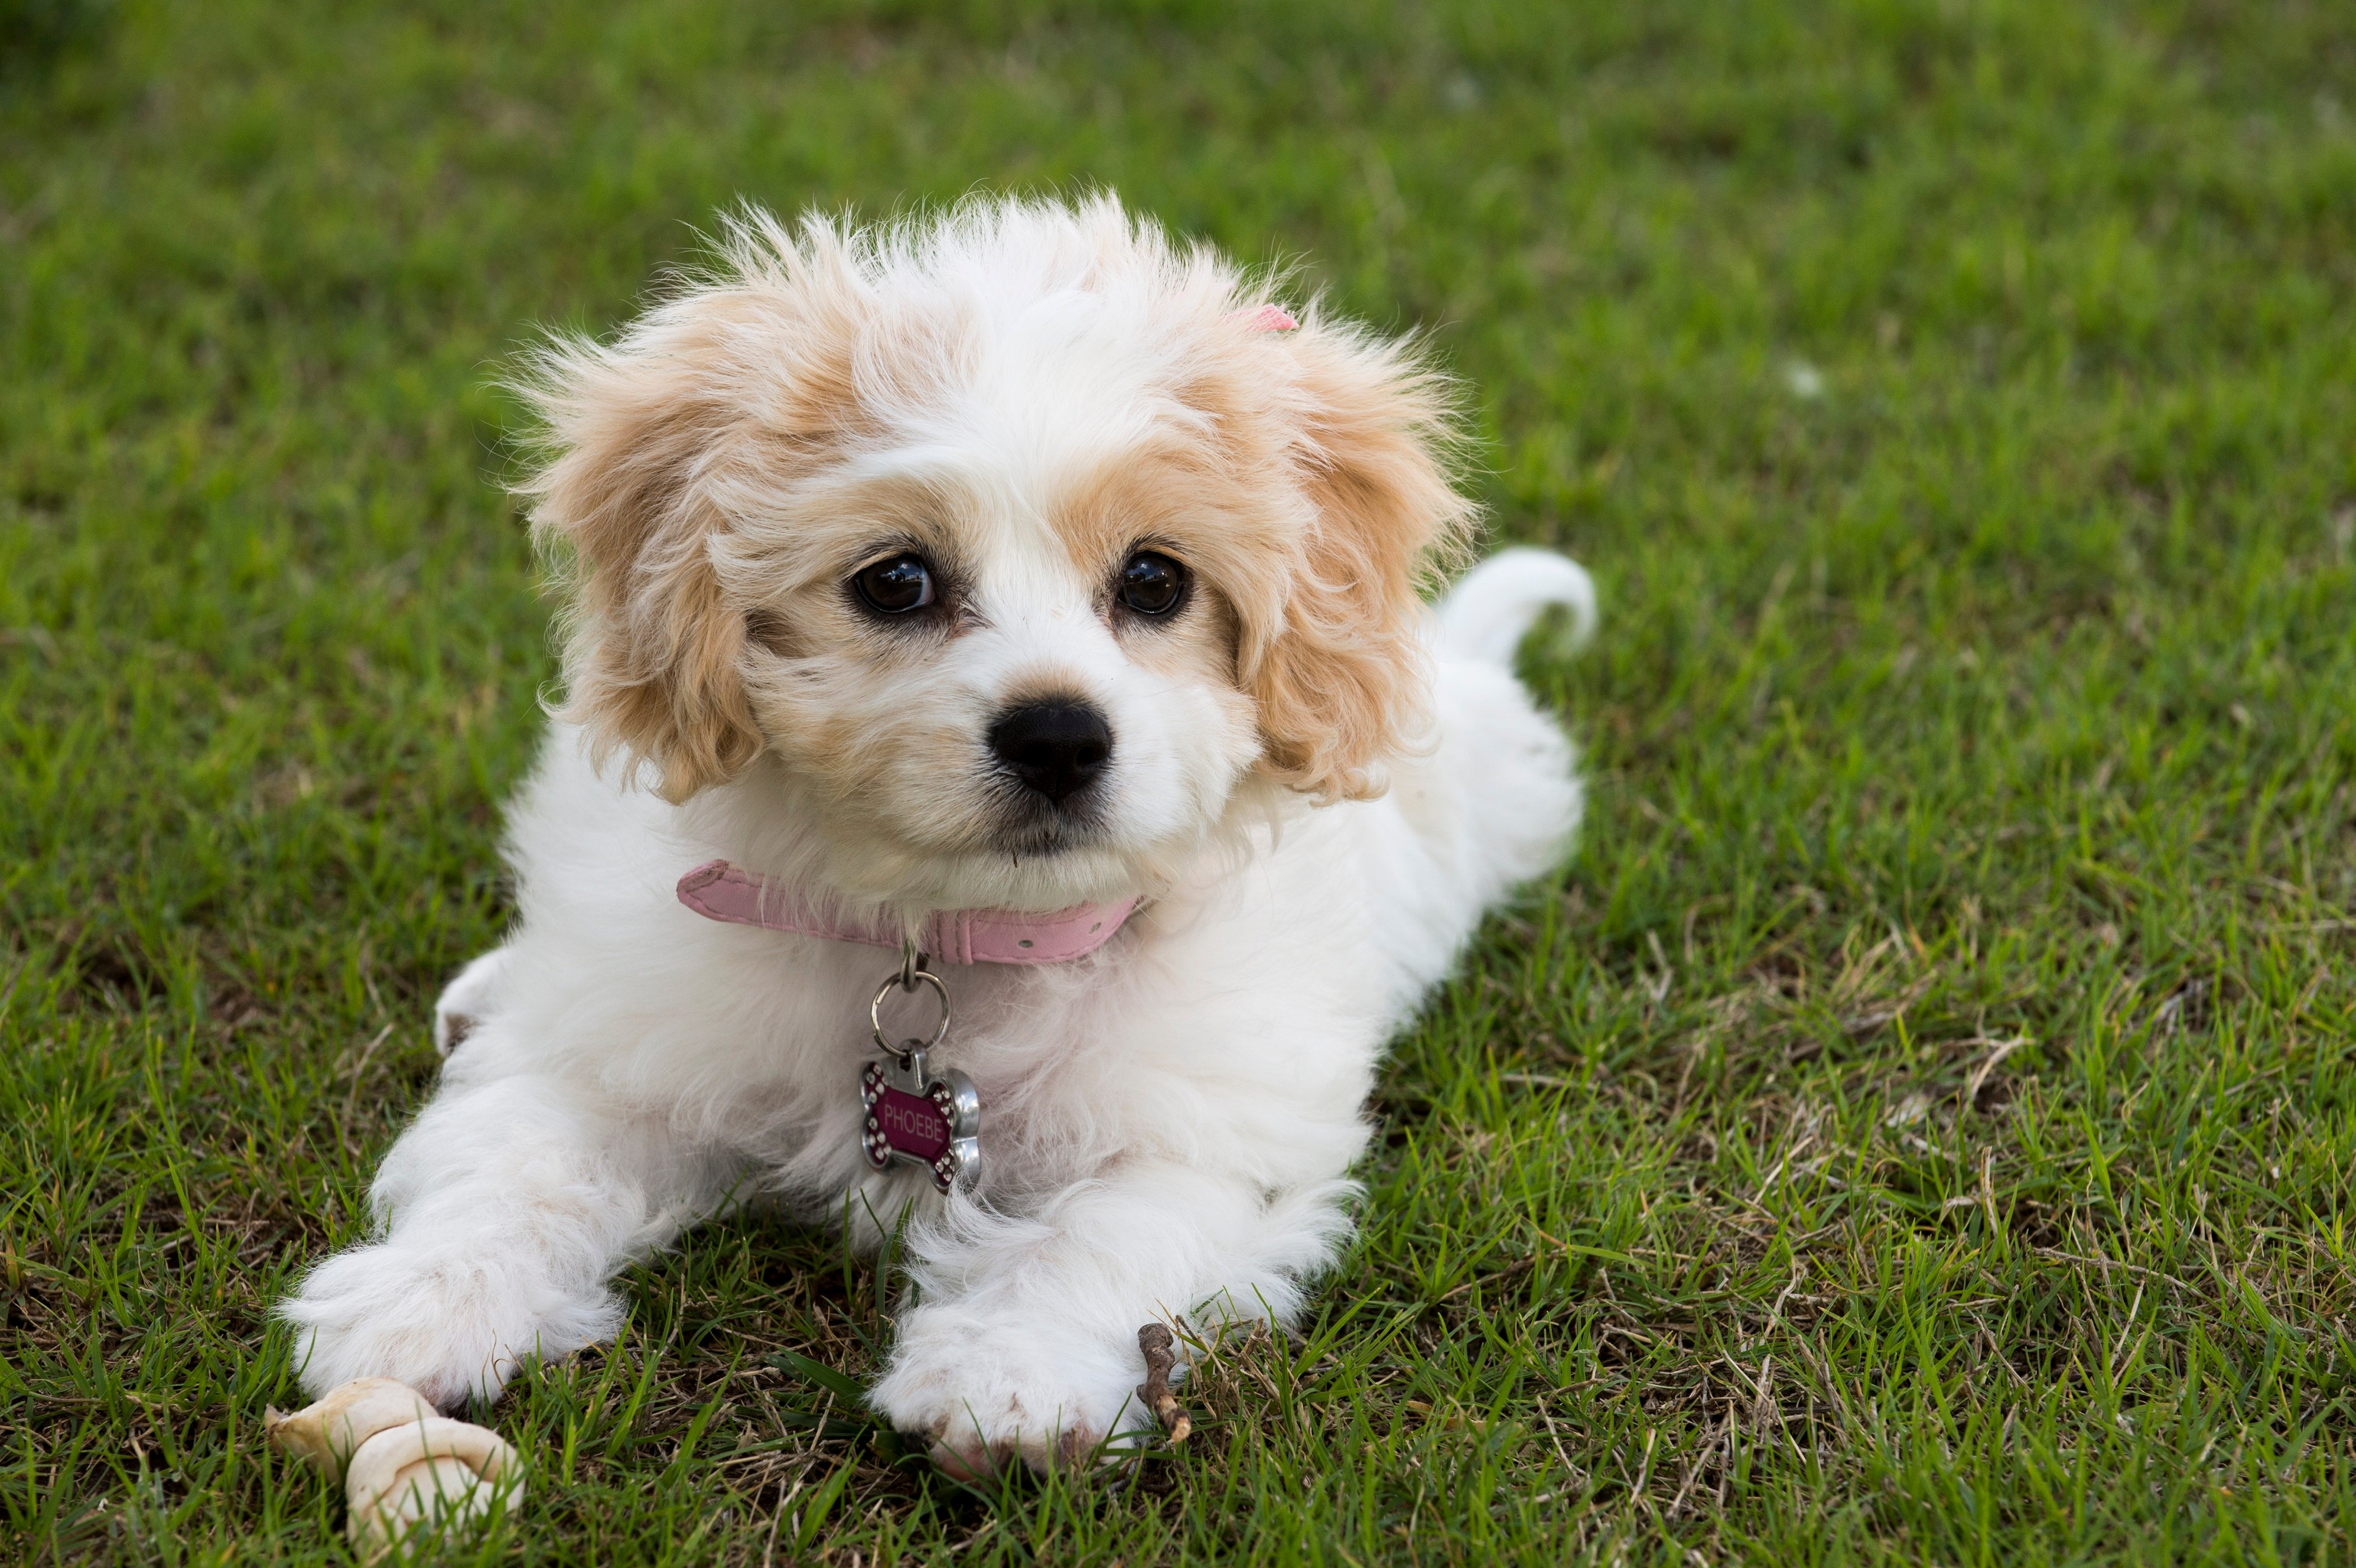 Cavachon Mixed Dog Breed Pictures